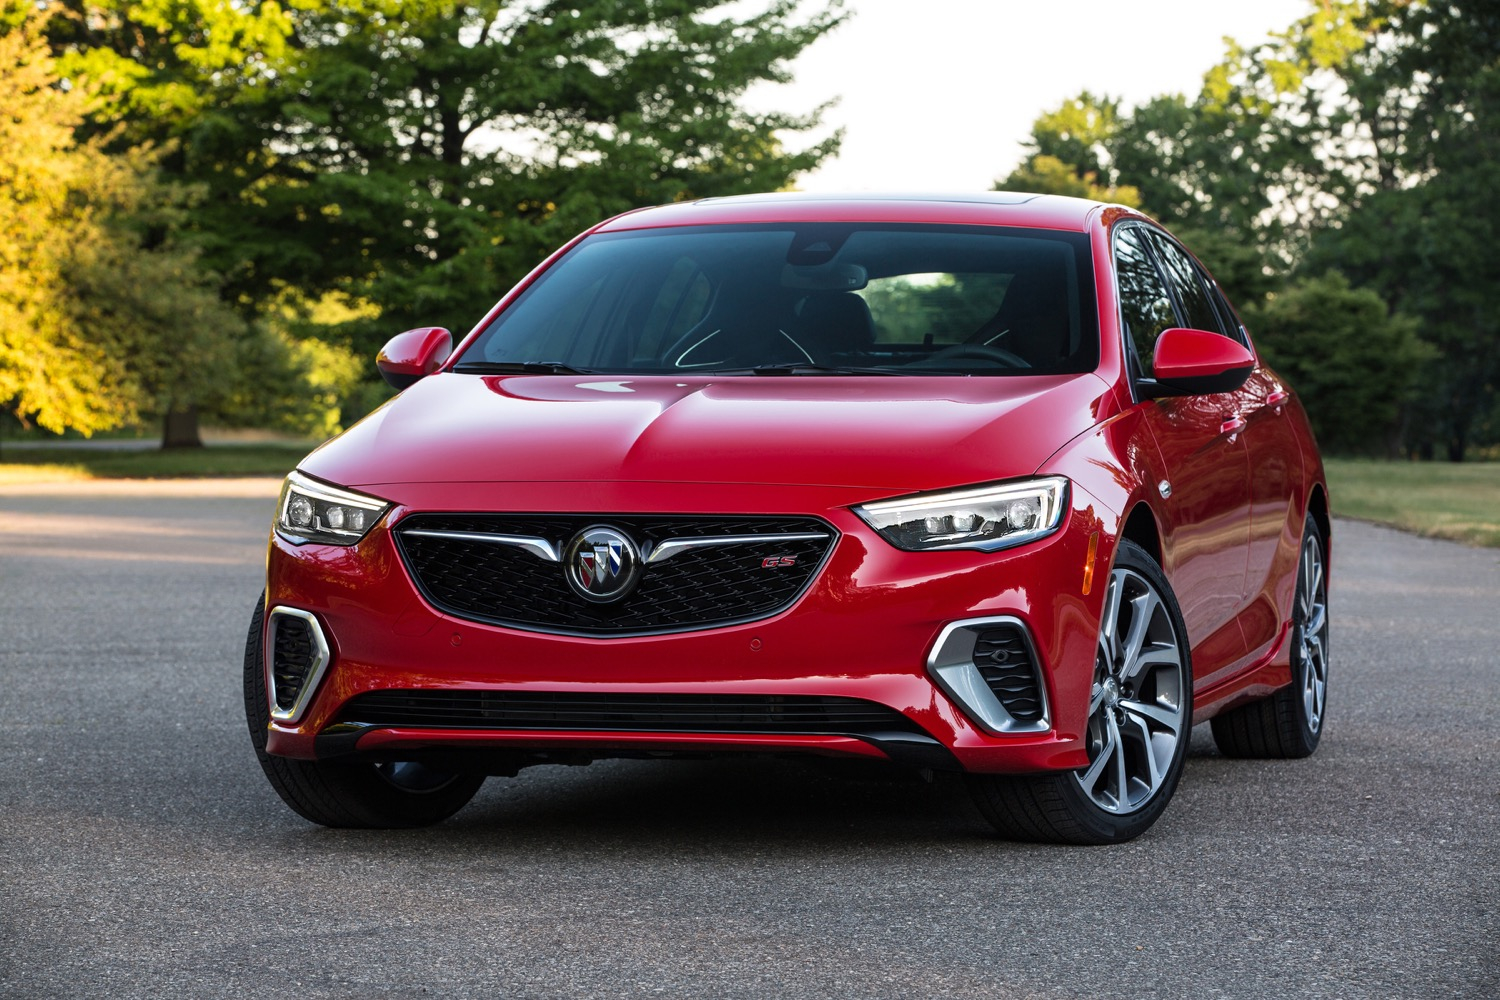 We Have Some Beef With This 2018 Buick Regal Gs Review | Gm New 2021 Buick Regal Gs 0-60, Interior, Engine